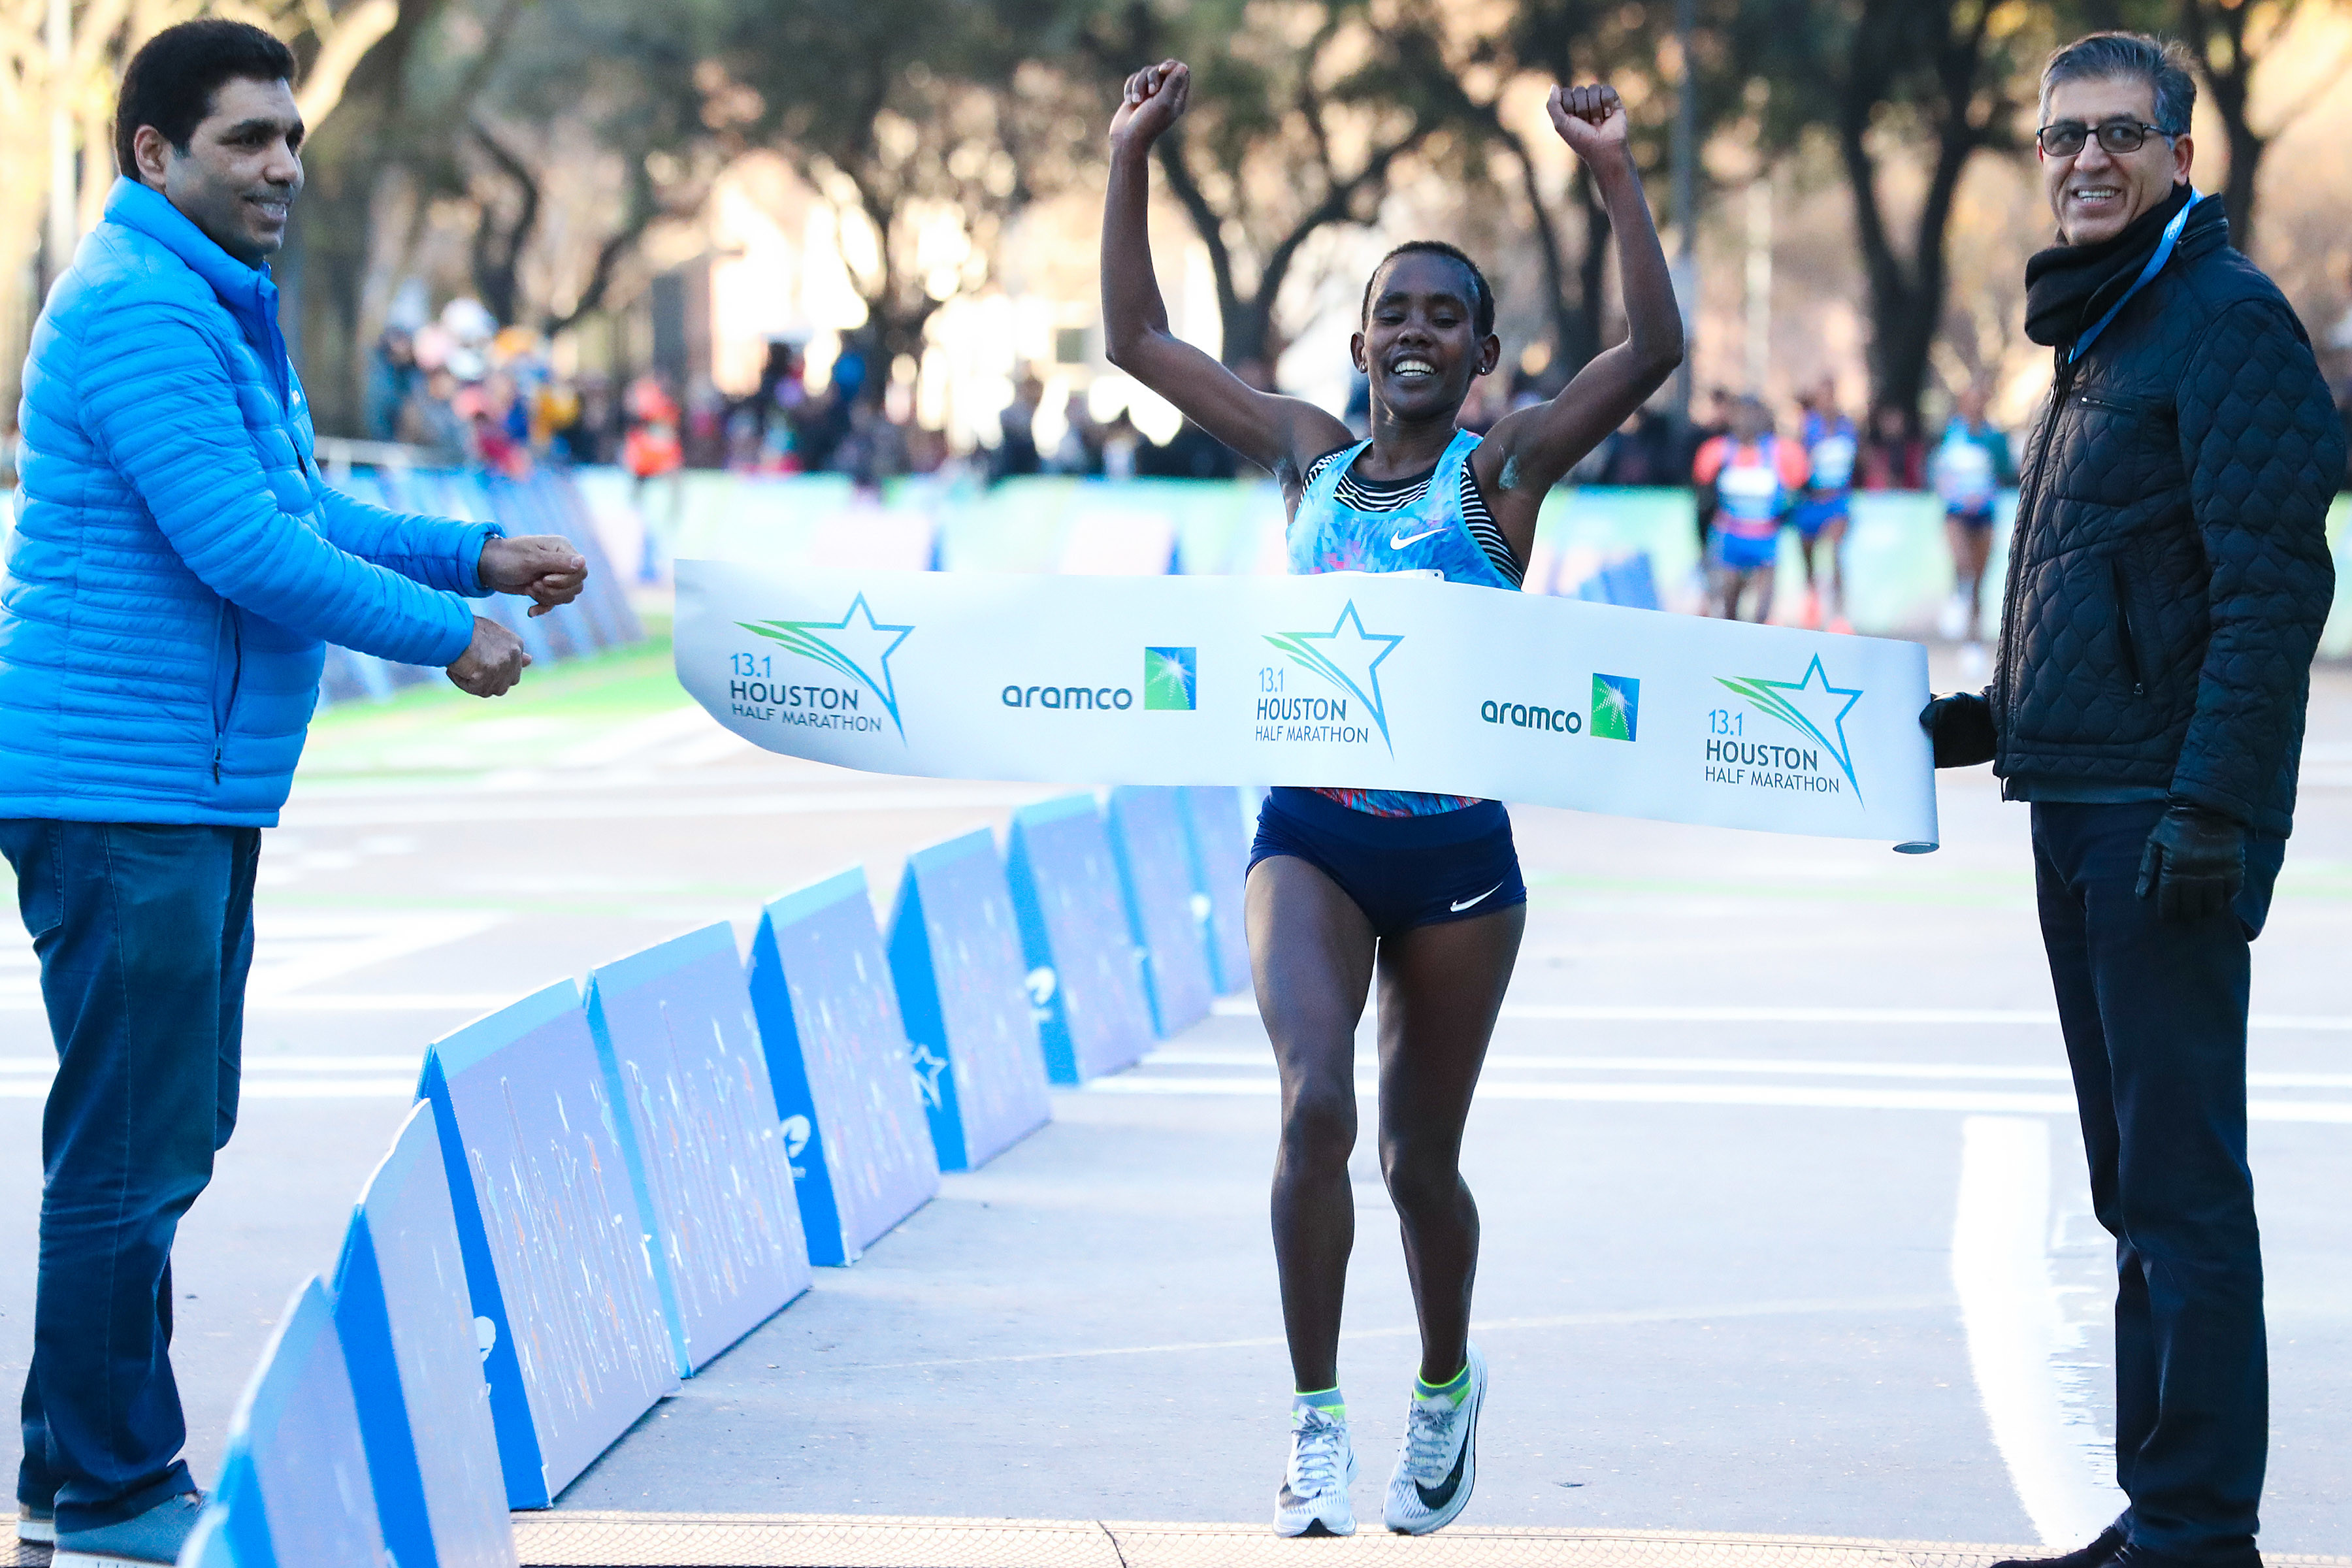 The Women's Half Marathon Times in Houston were fast!